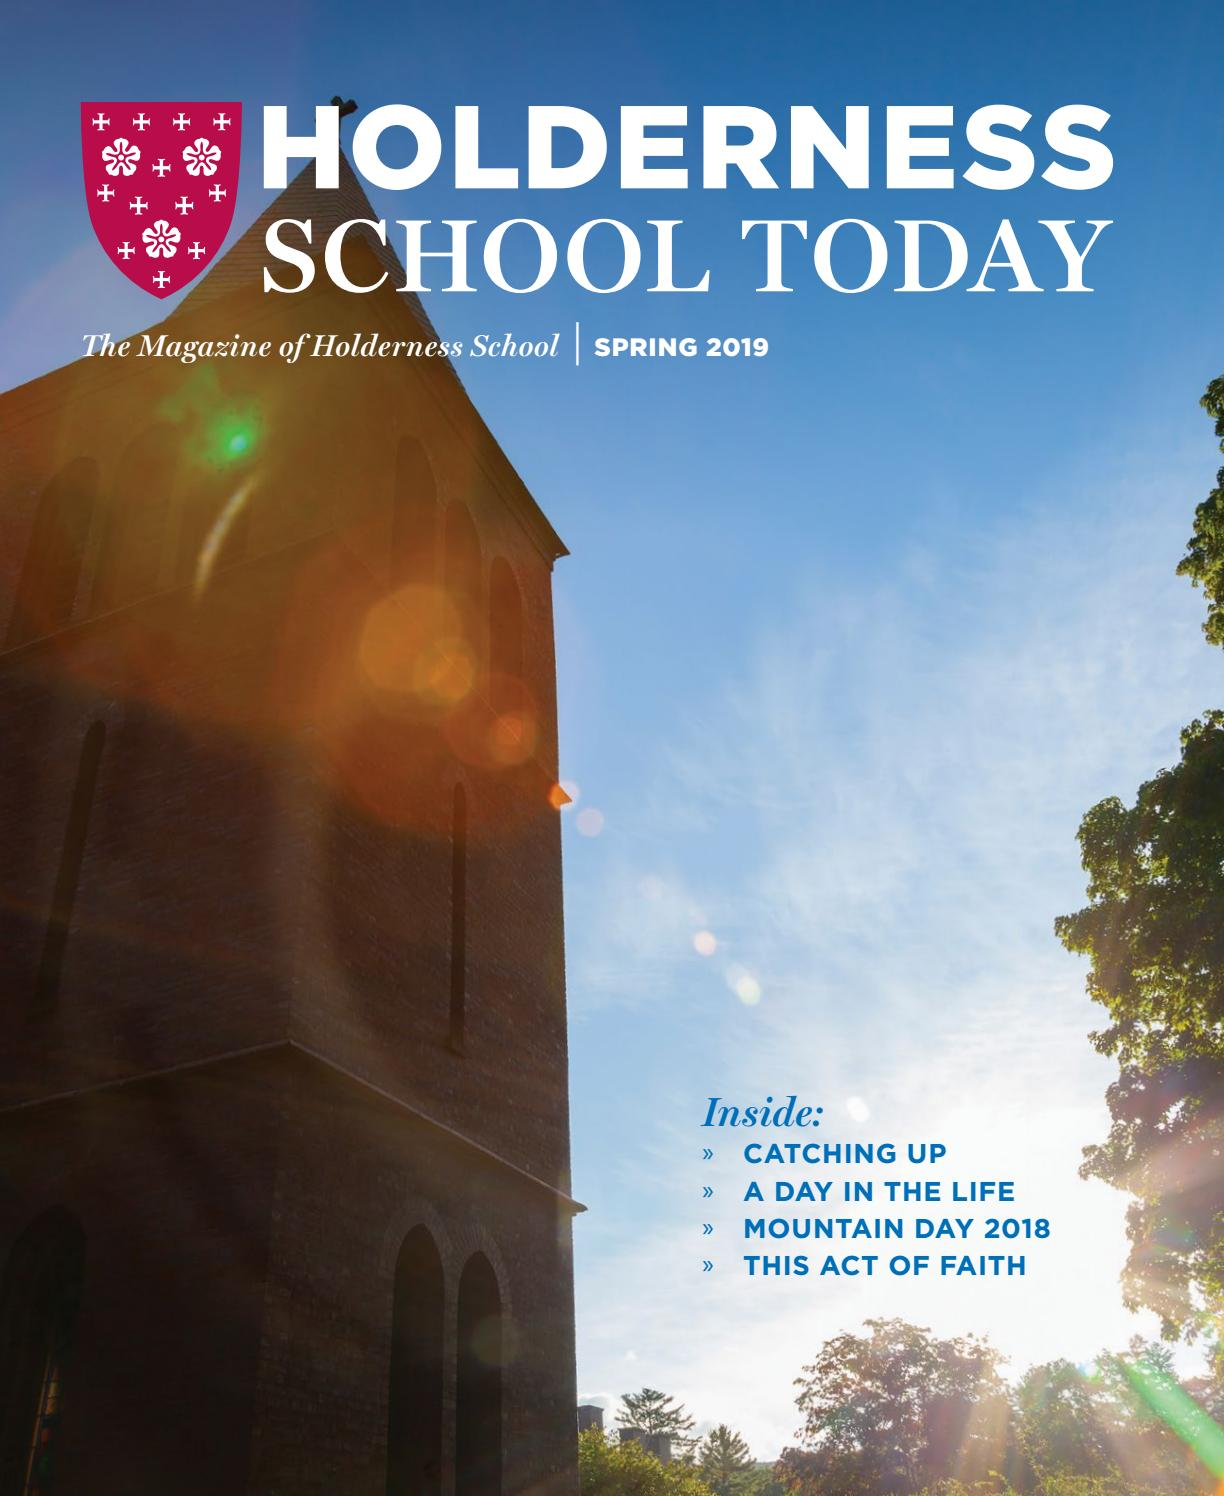 Holderness School Today, Spring 2019 by Emily Magnus - issuu